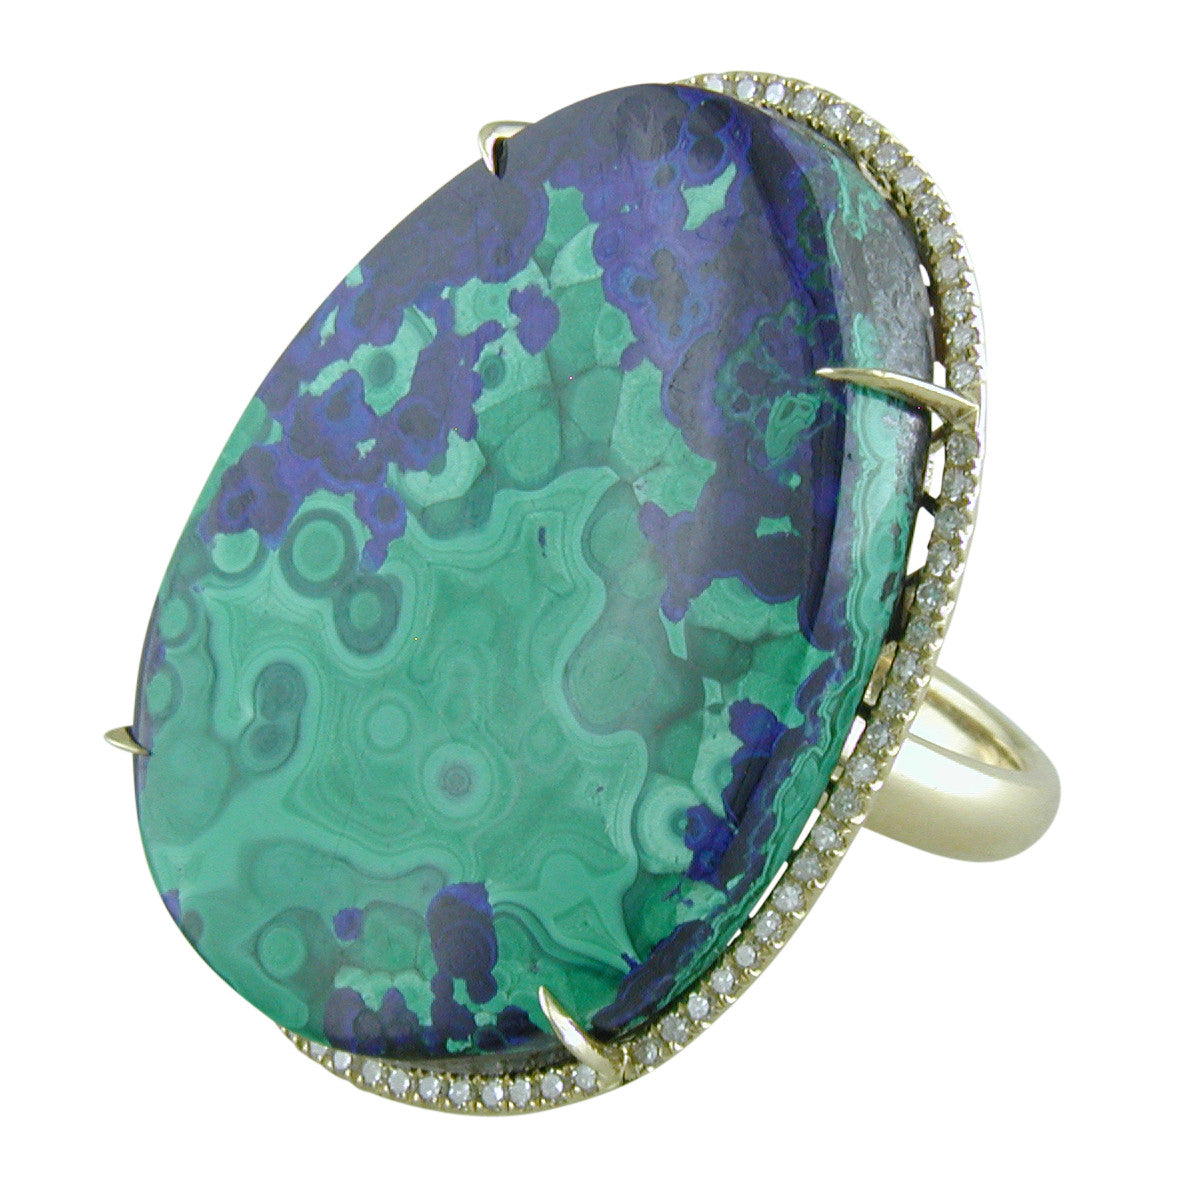 Antique Estate Oval Blue & Green Azurmalachite 18K Yellow Gold Ring with Diamond Halo